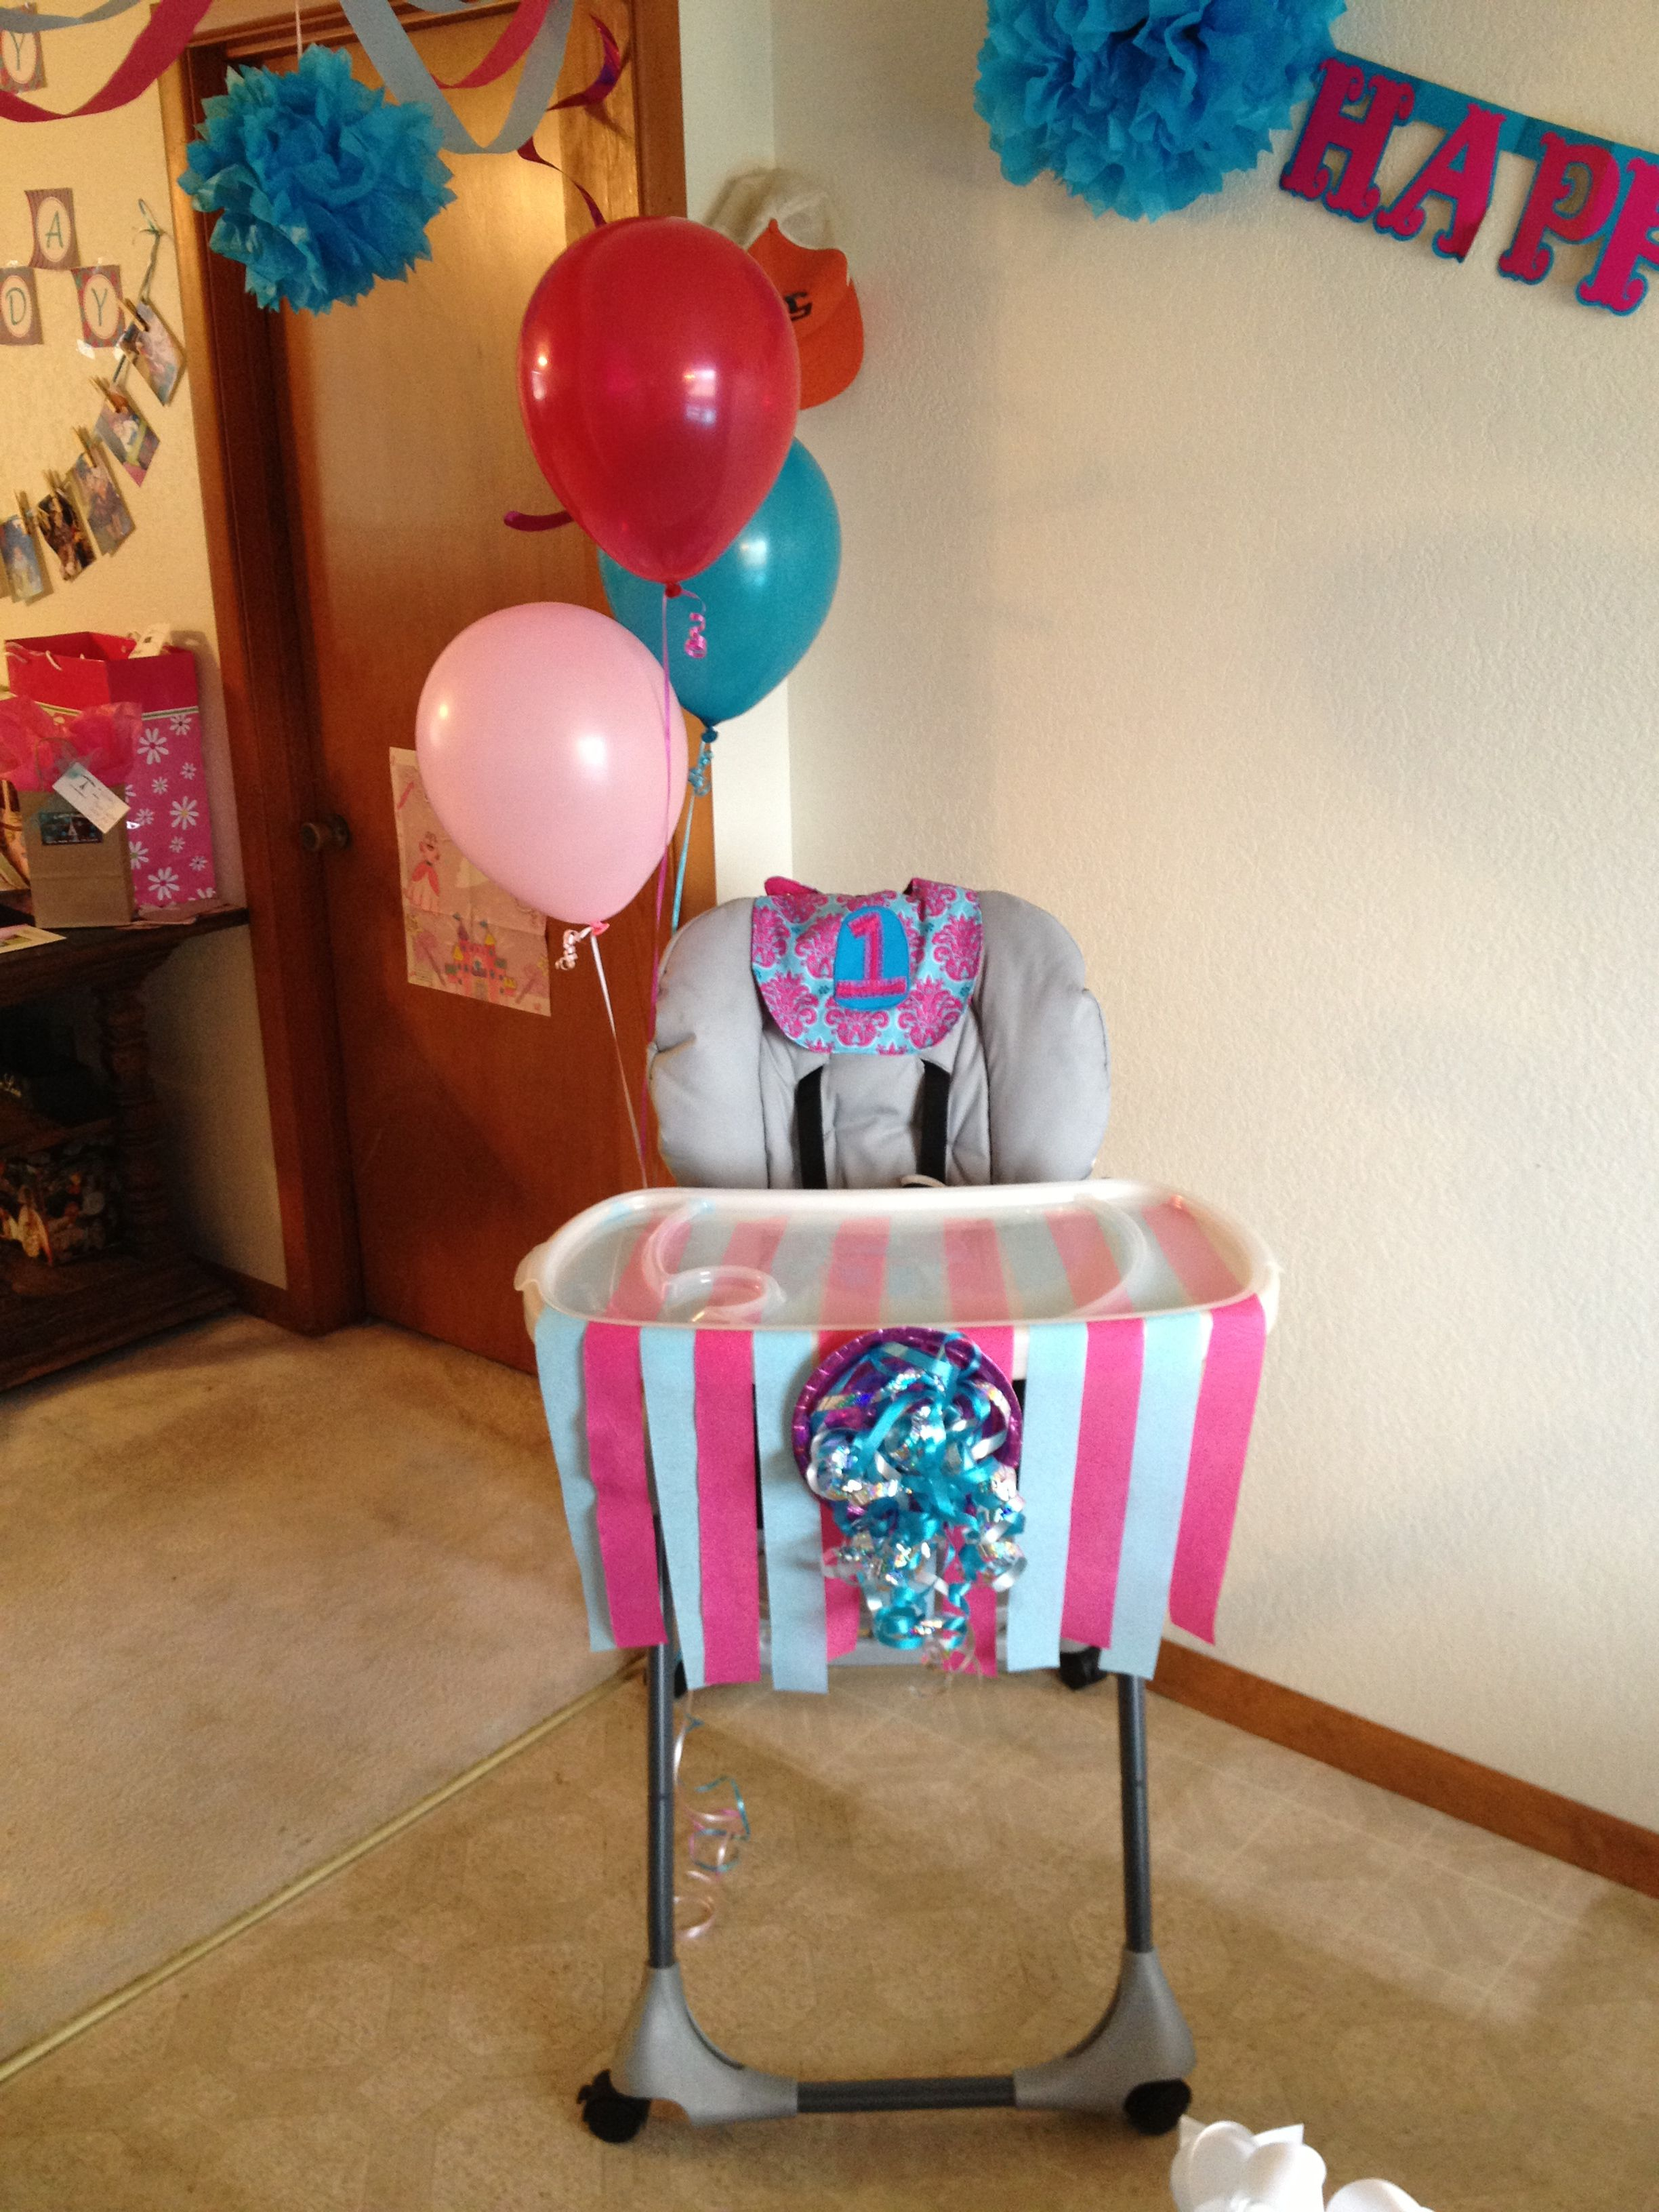 I like the idea of these highchair decorations